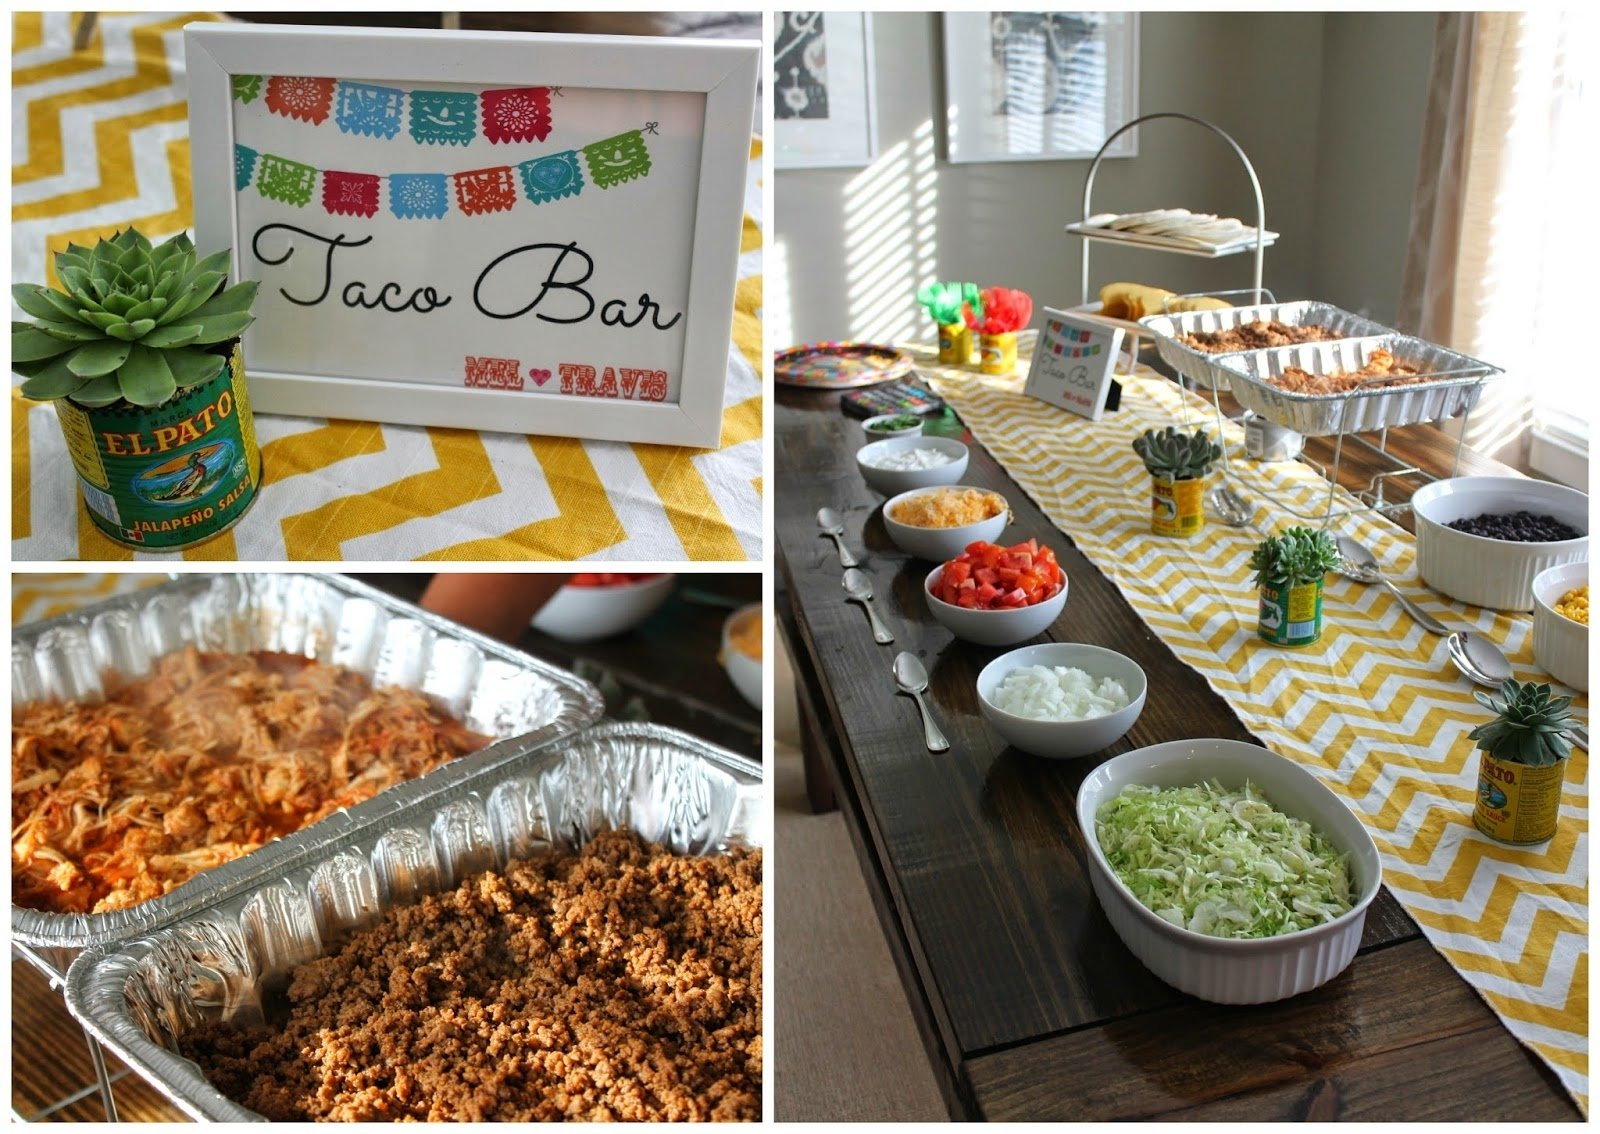 taco bar ideas for party : festive taco bar ideas for any parties